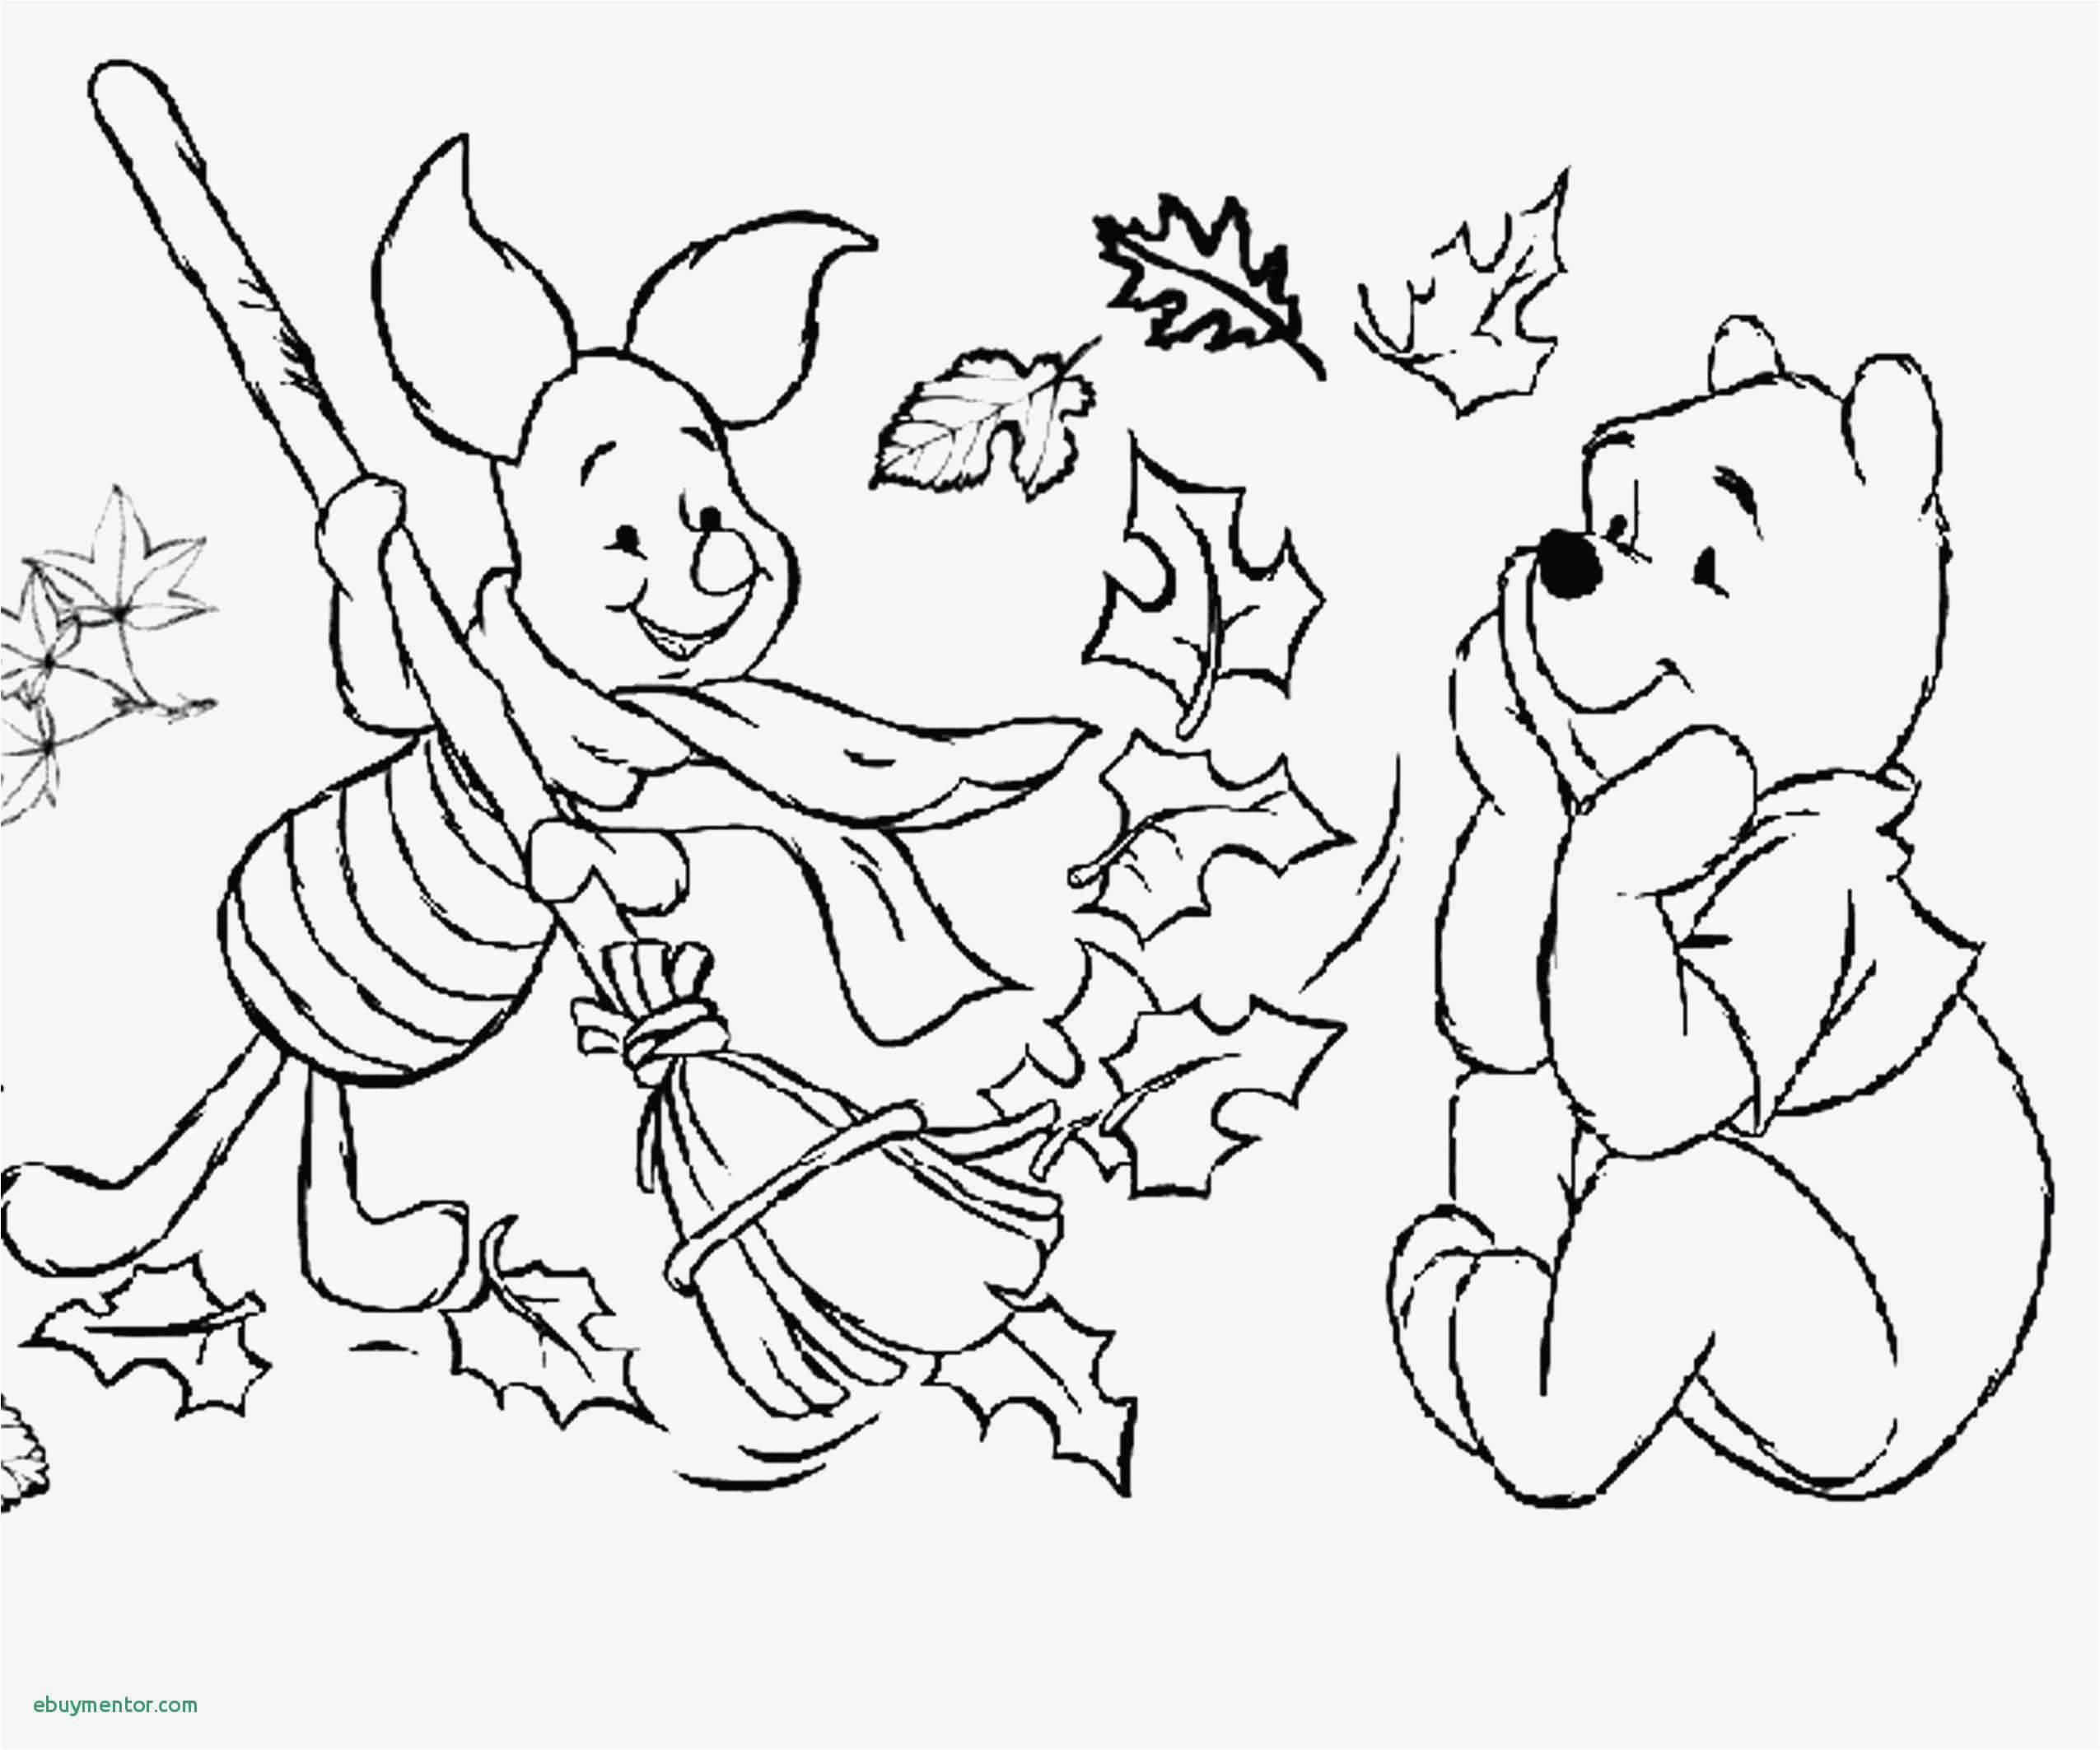 Free Ninja Coloring Pages  to Print 20f - To print for your project